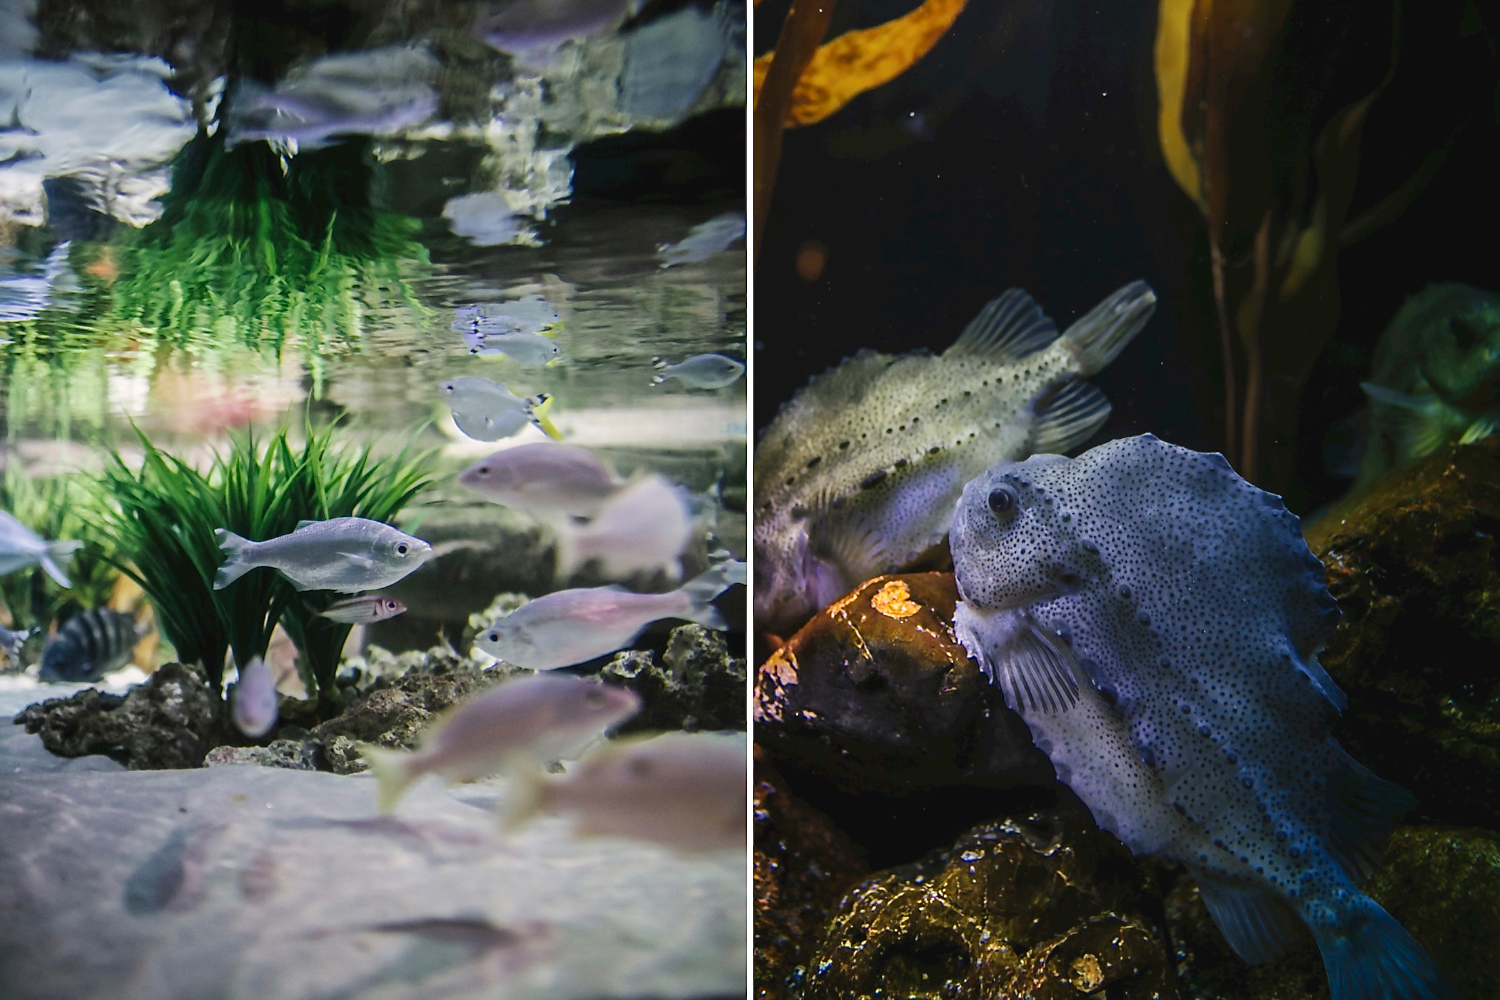 Fish in an aquarium // Part of larger Aquarium engagement photoshoot by Maddie Mae Photography